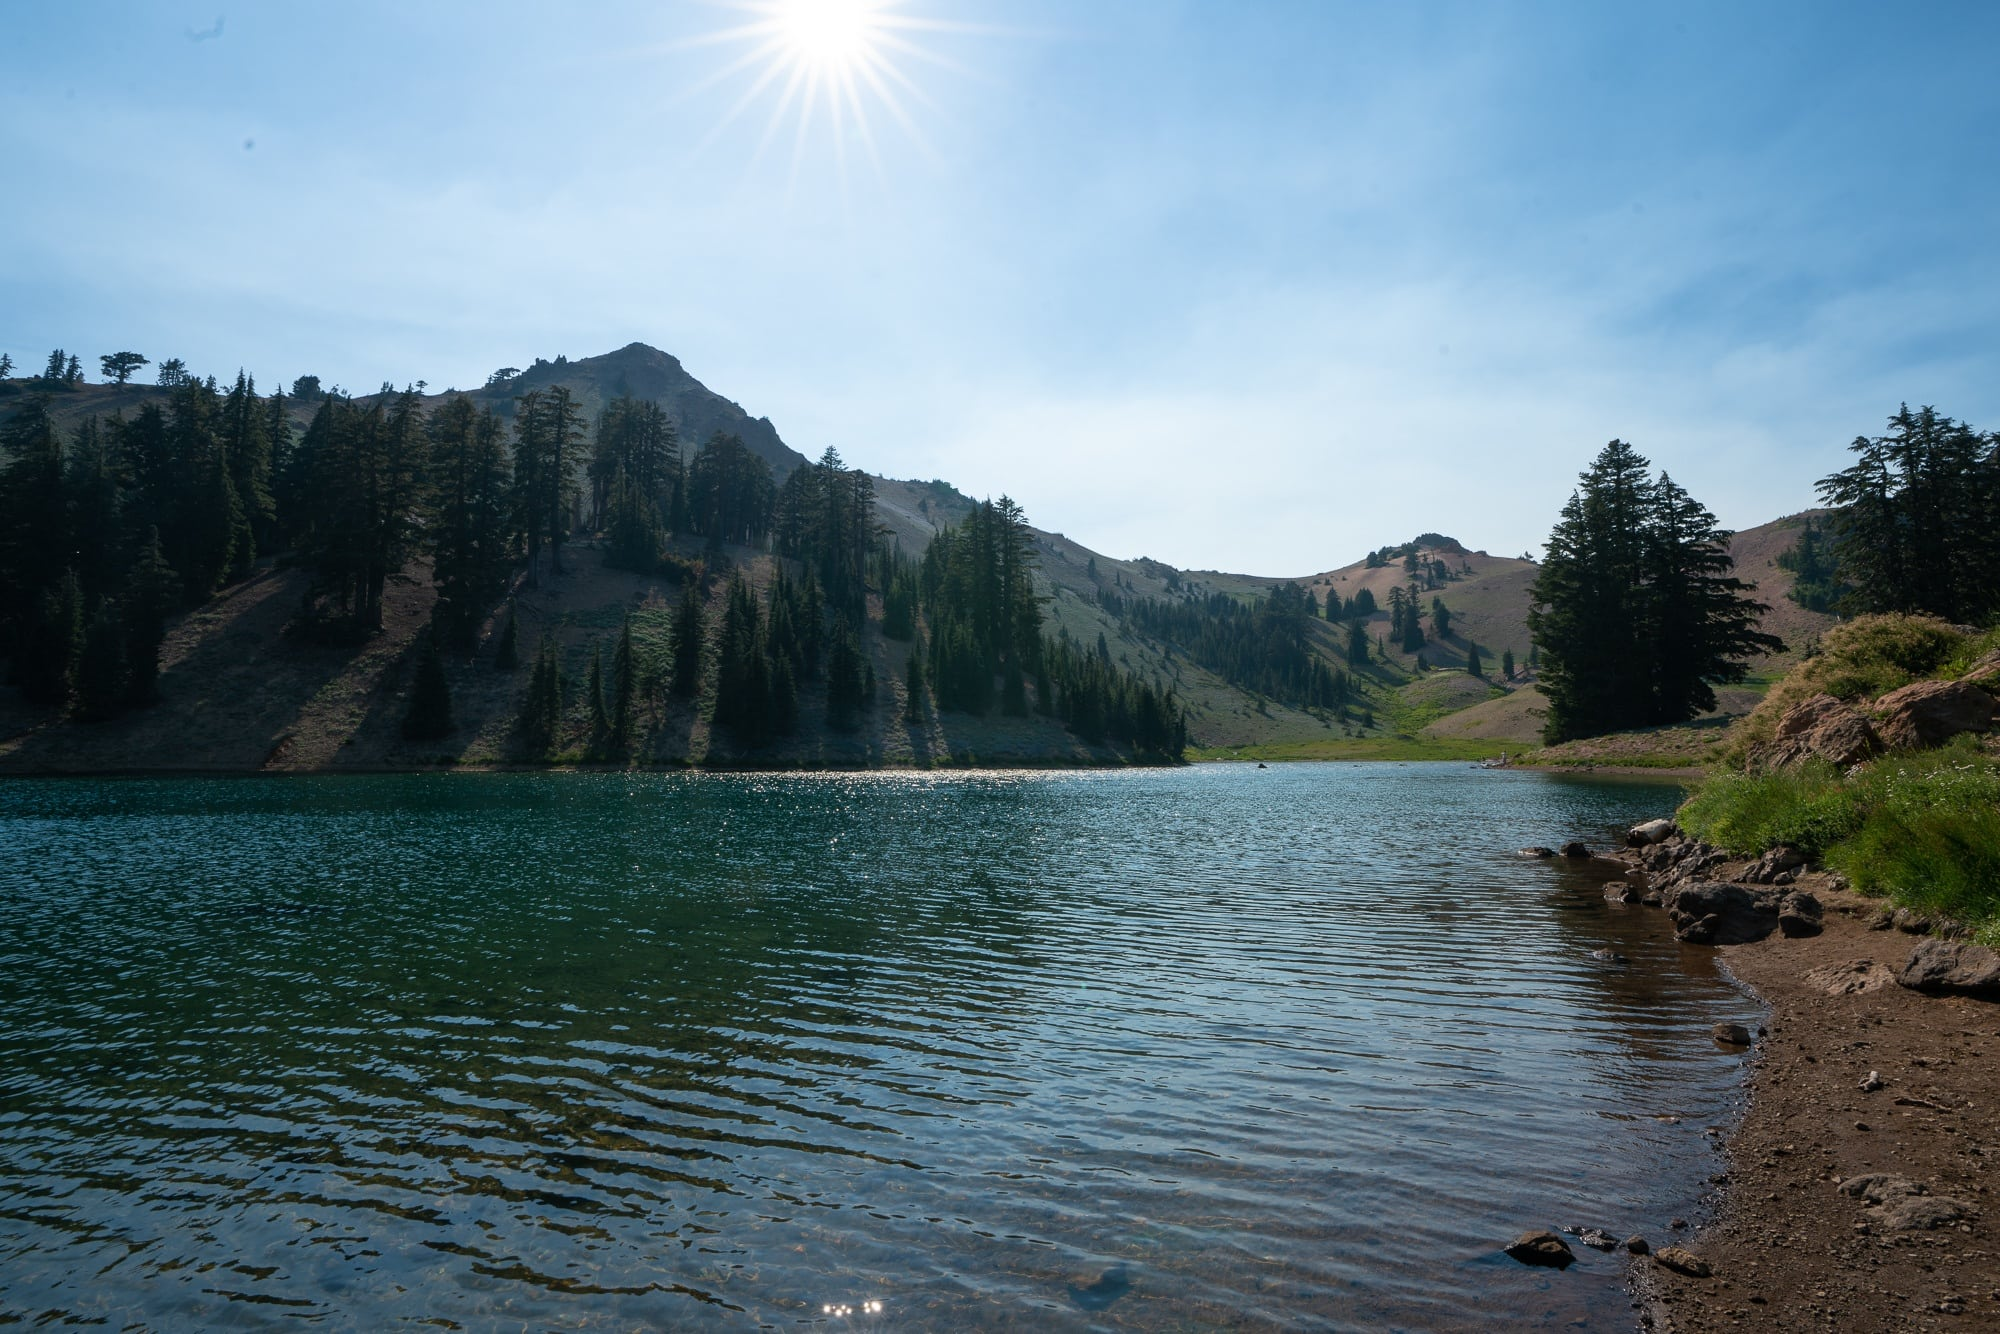 Ridge Lakes // Plan your Lassen National Park hikes with our roundup of the best hikes, including boiling hot pots, alpine lakes, and big summits.